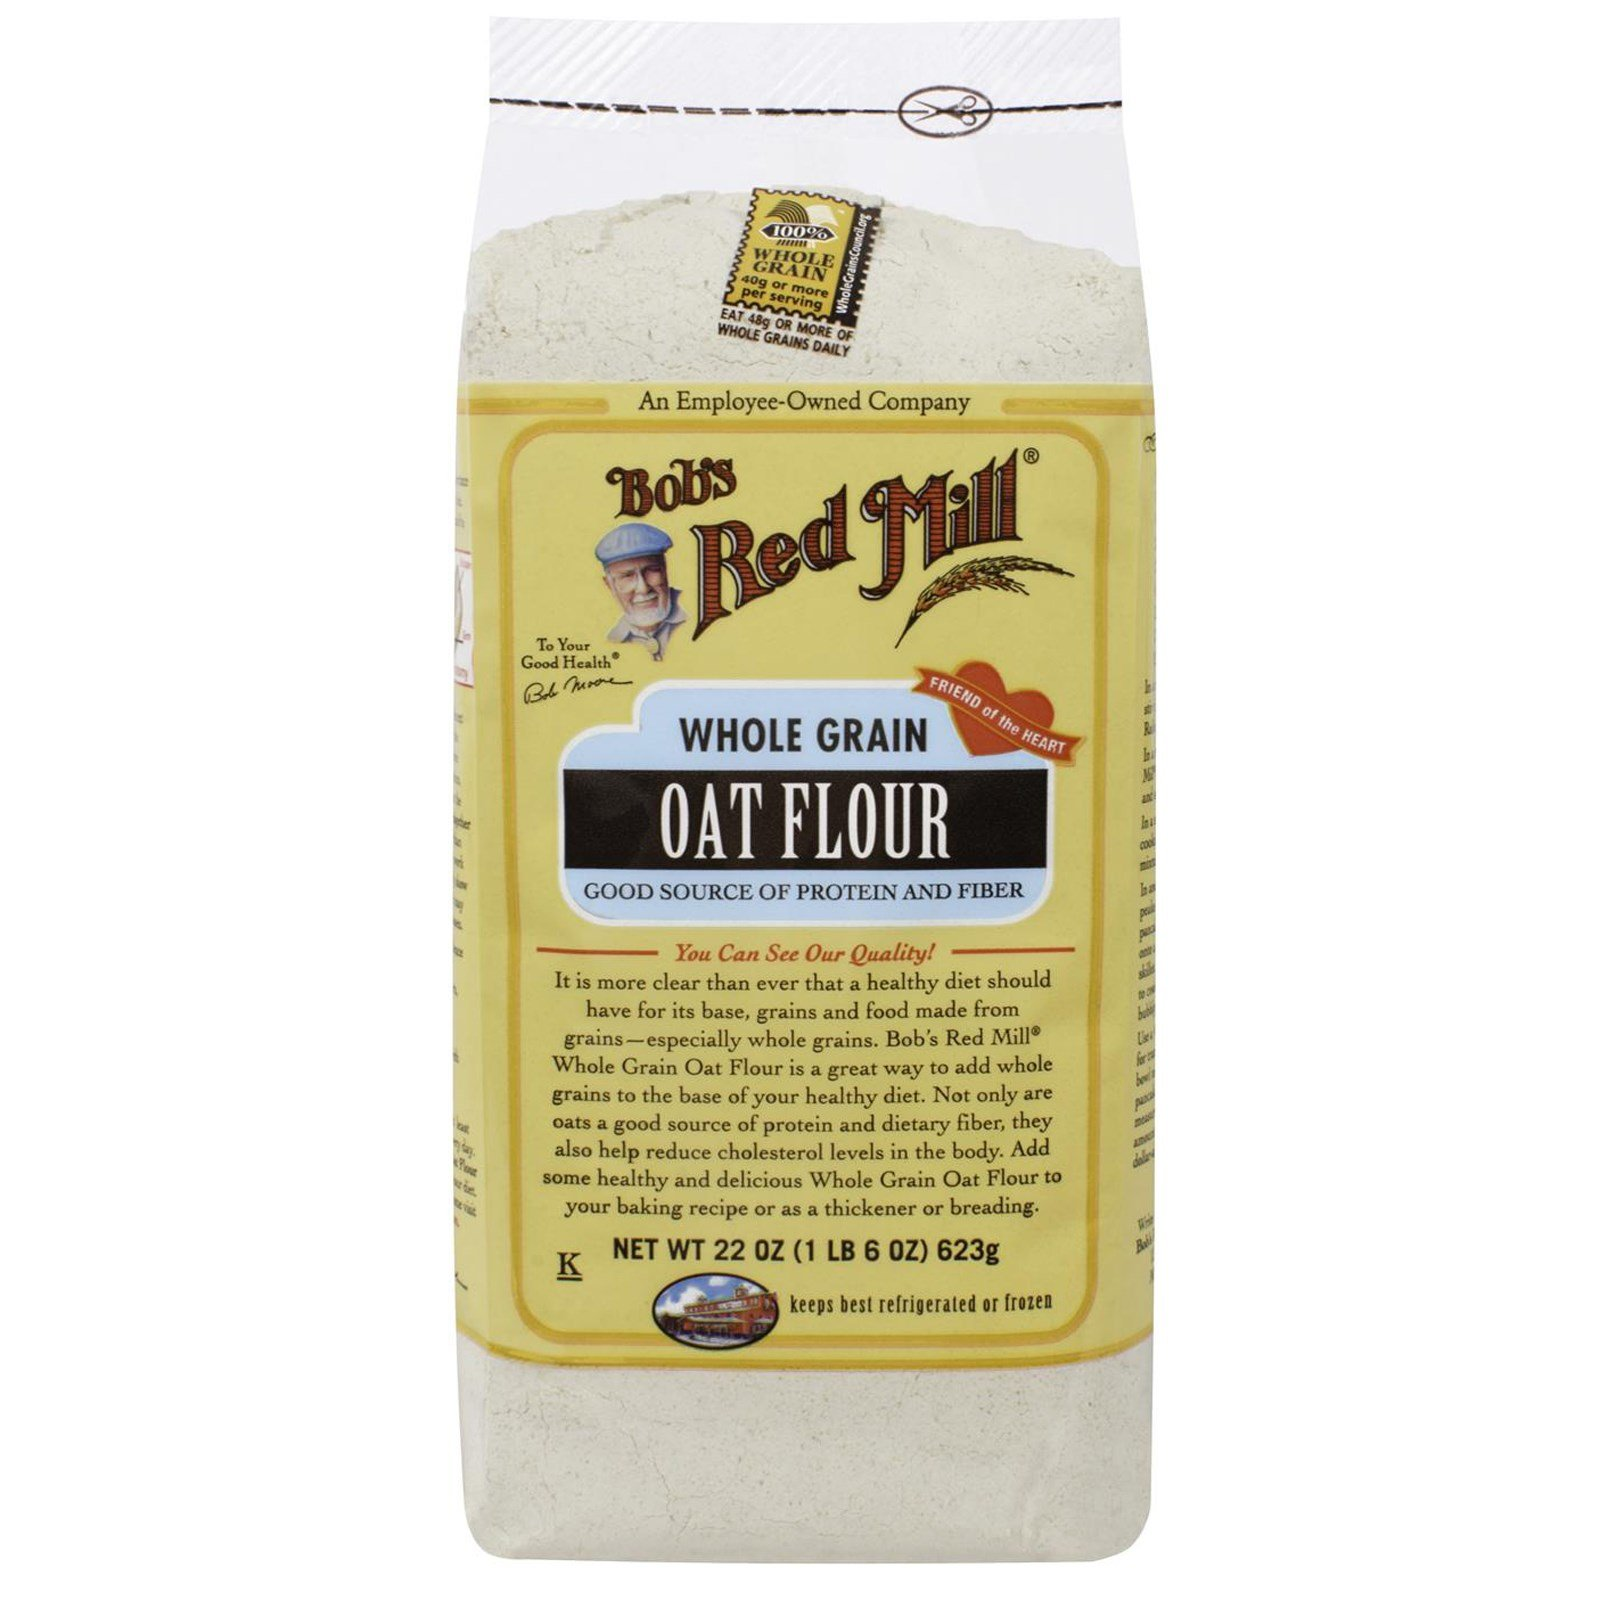 Bob's Red Mill, Whole Grain Oat Flour, 22 oz(Pack of 4)